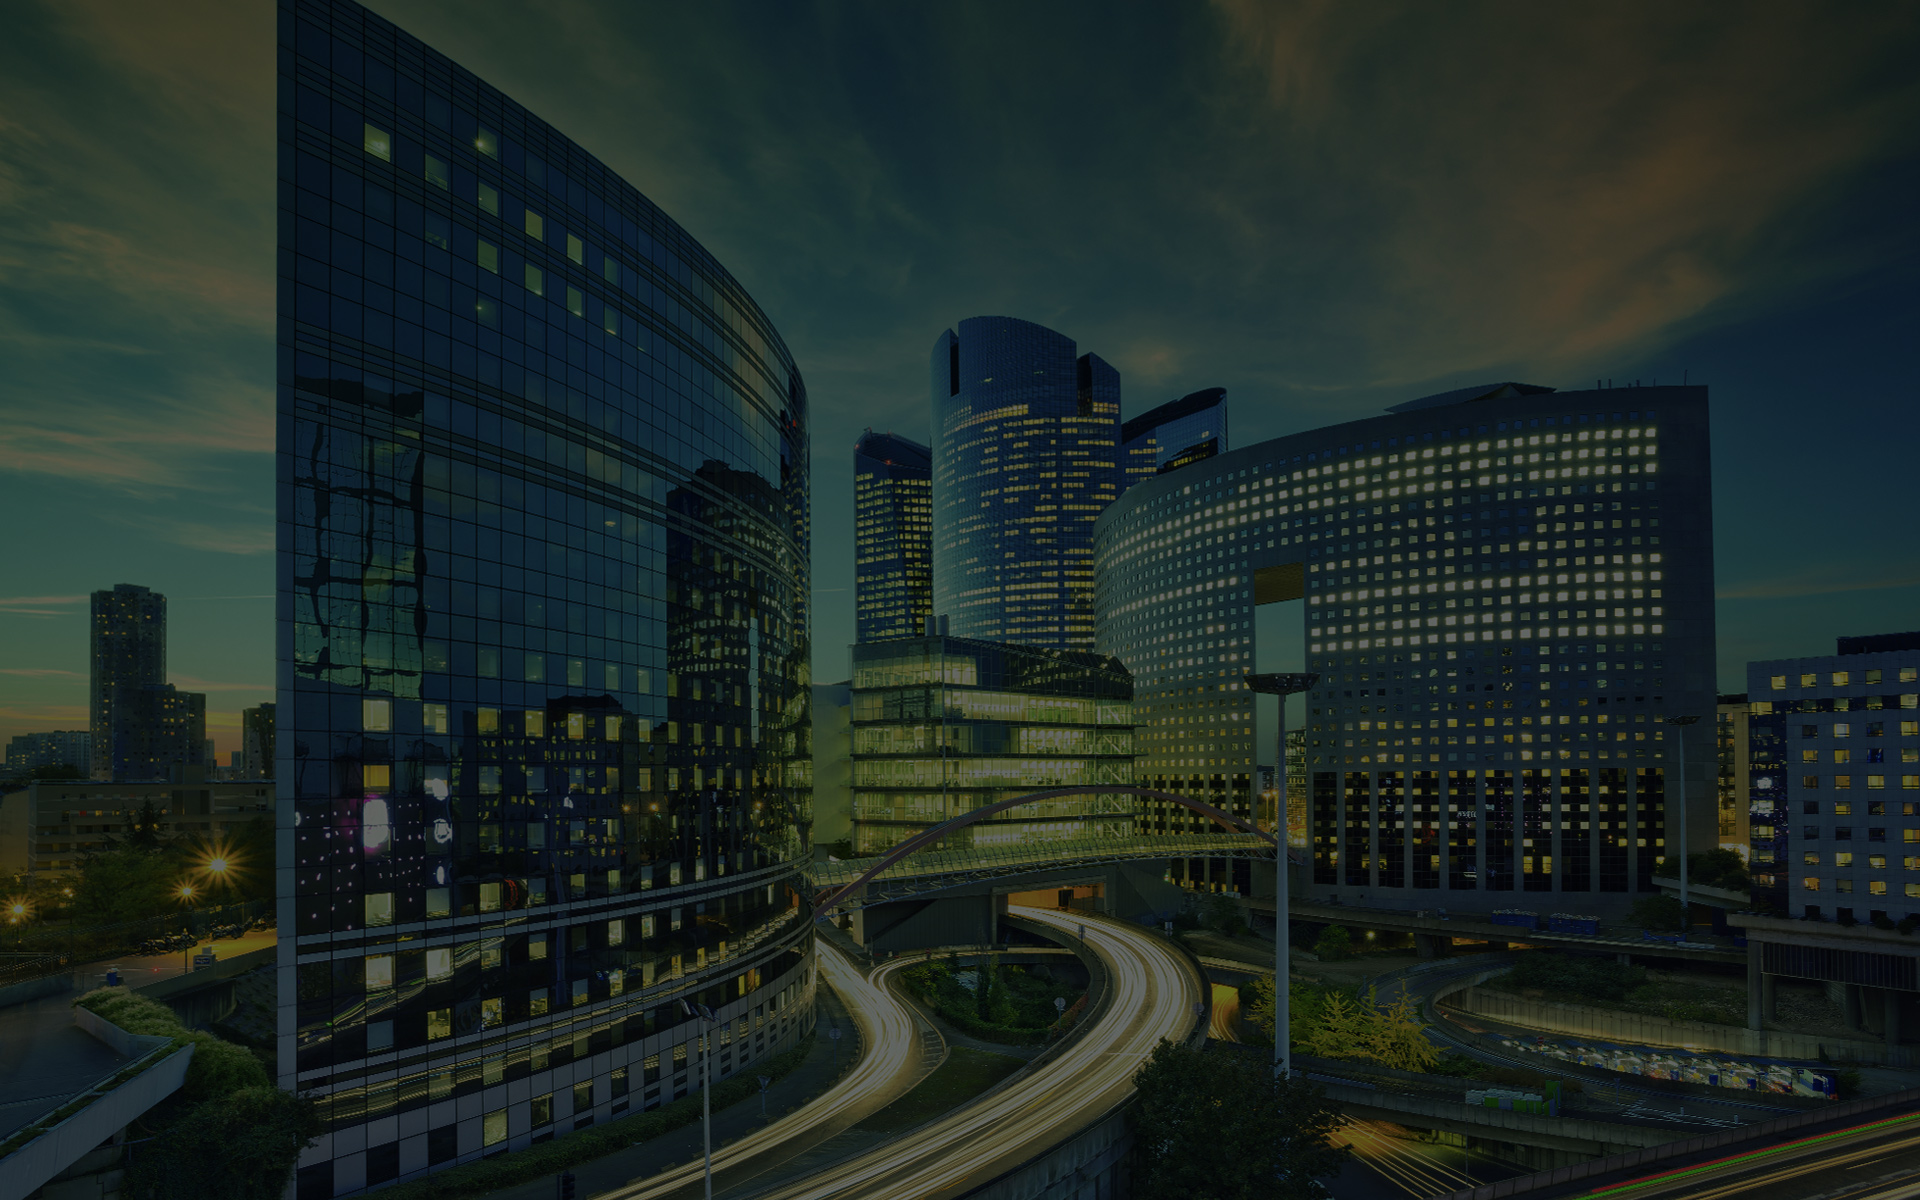 financial buildings and businesses